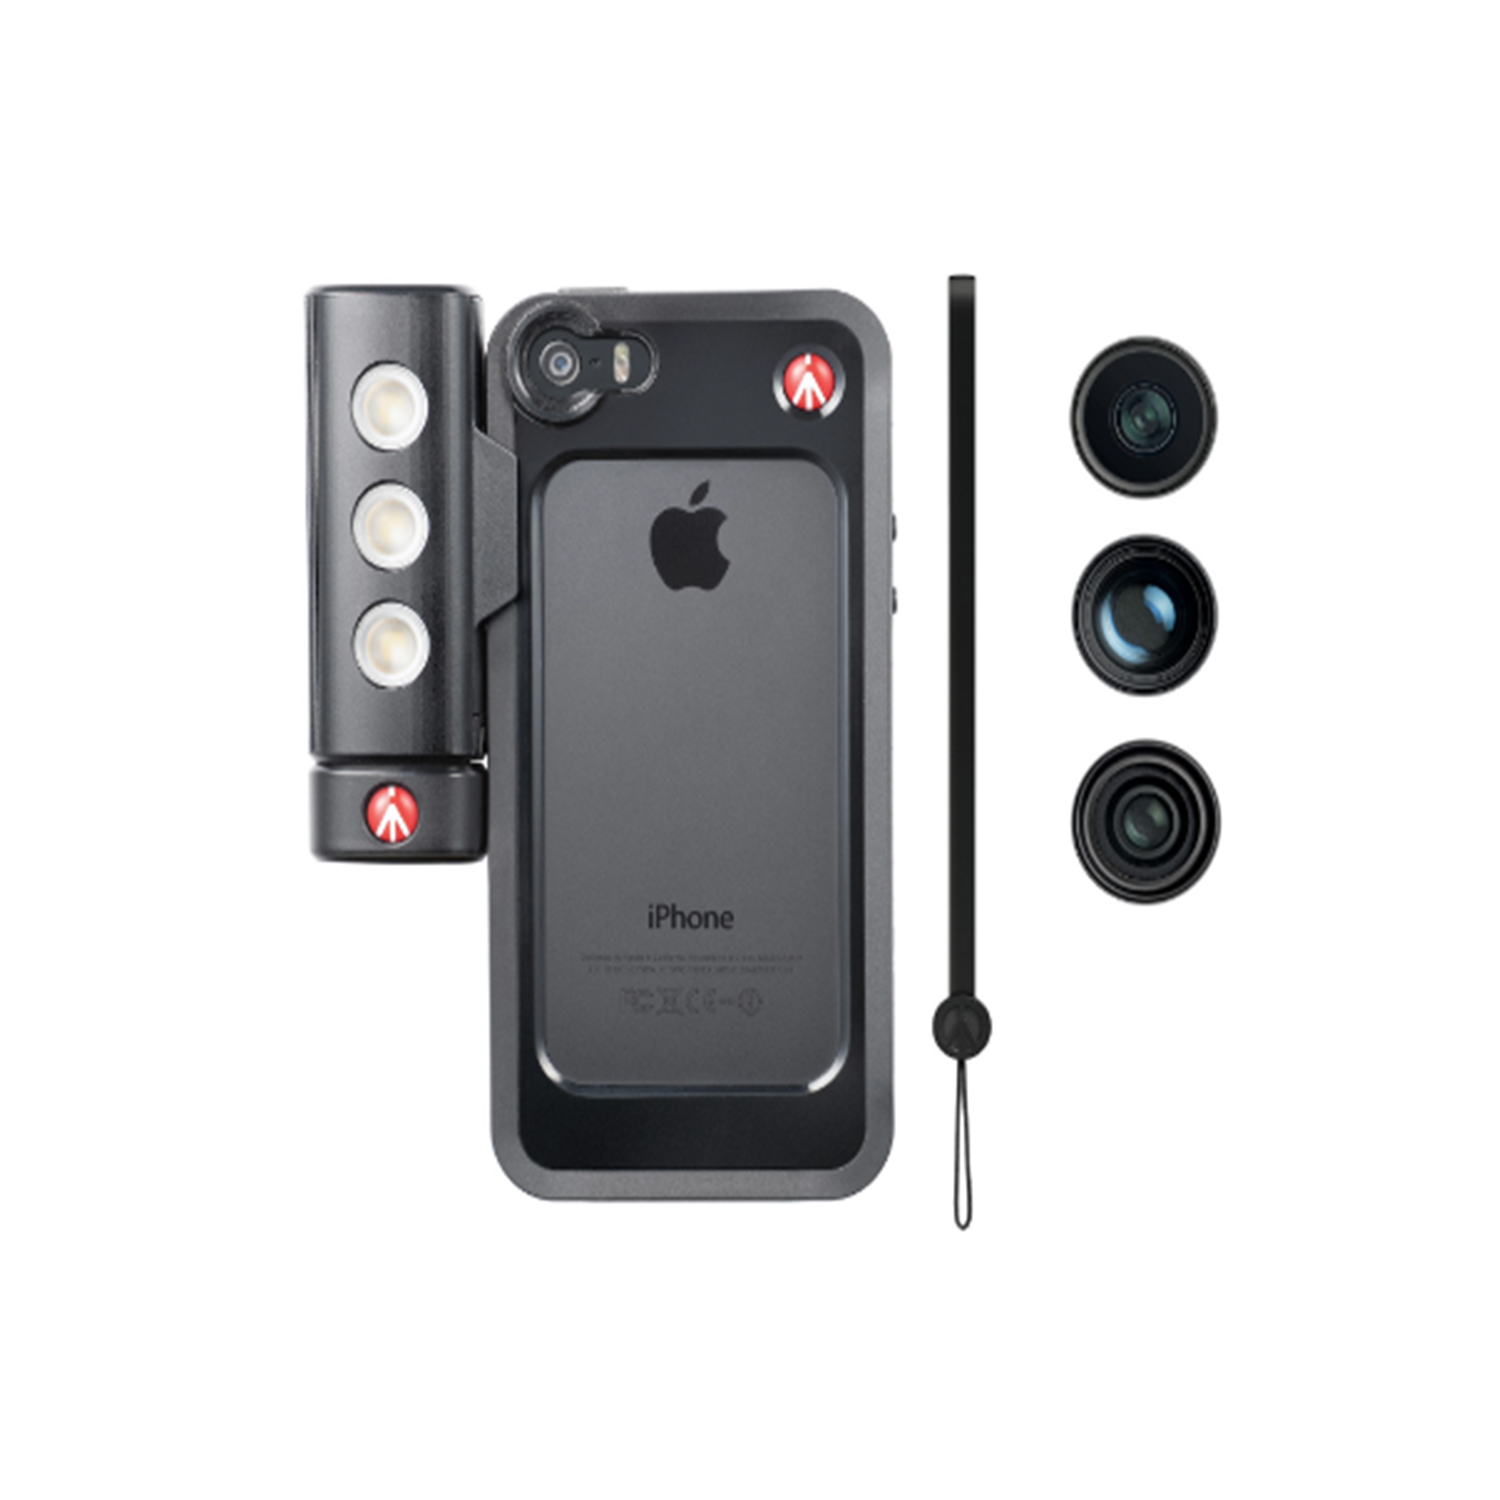 Manfrotto KYLP iPhone 5 bumper +3 lenses+SMT LED with tripod mount